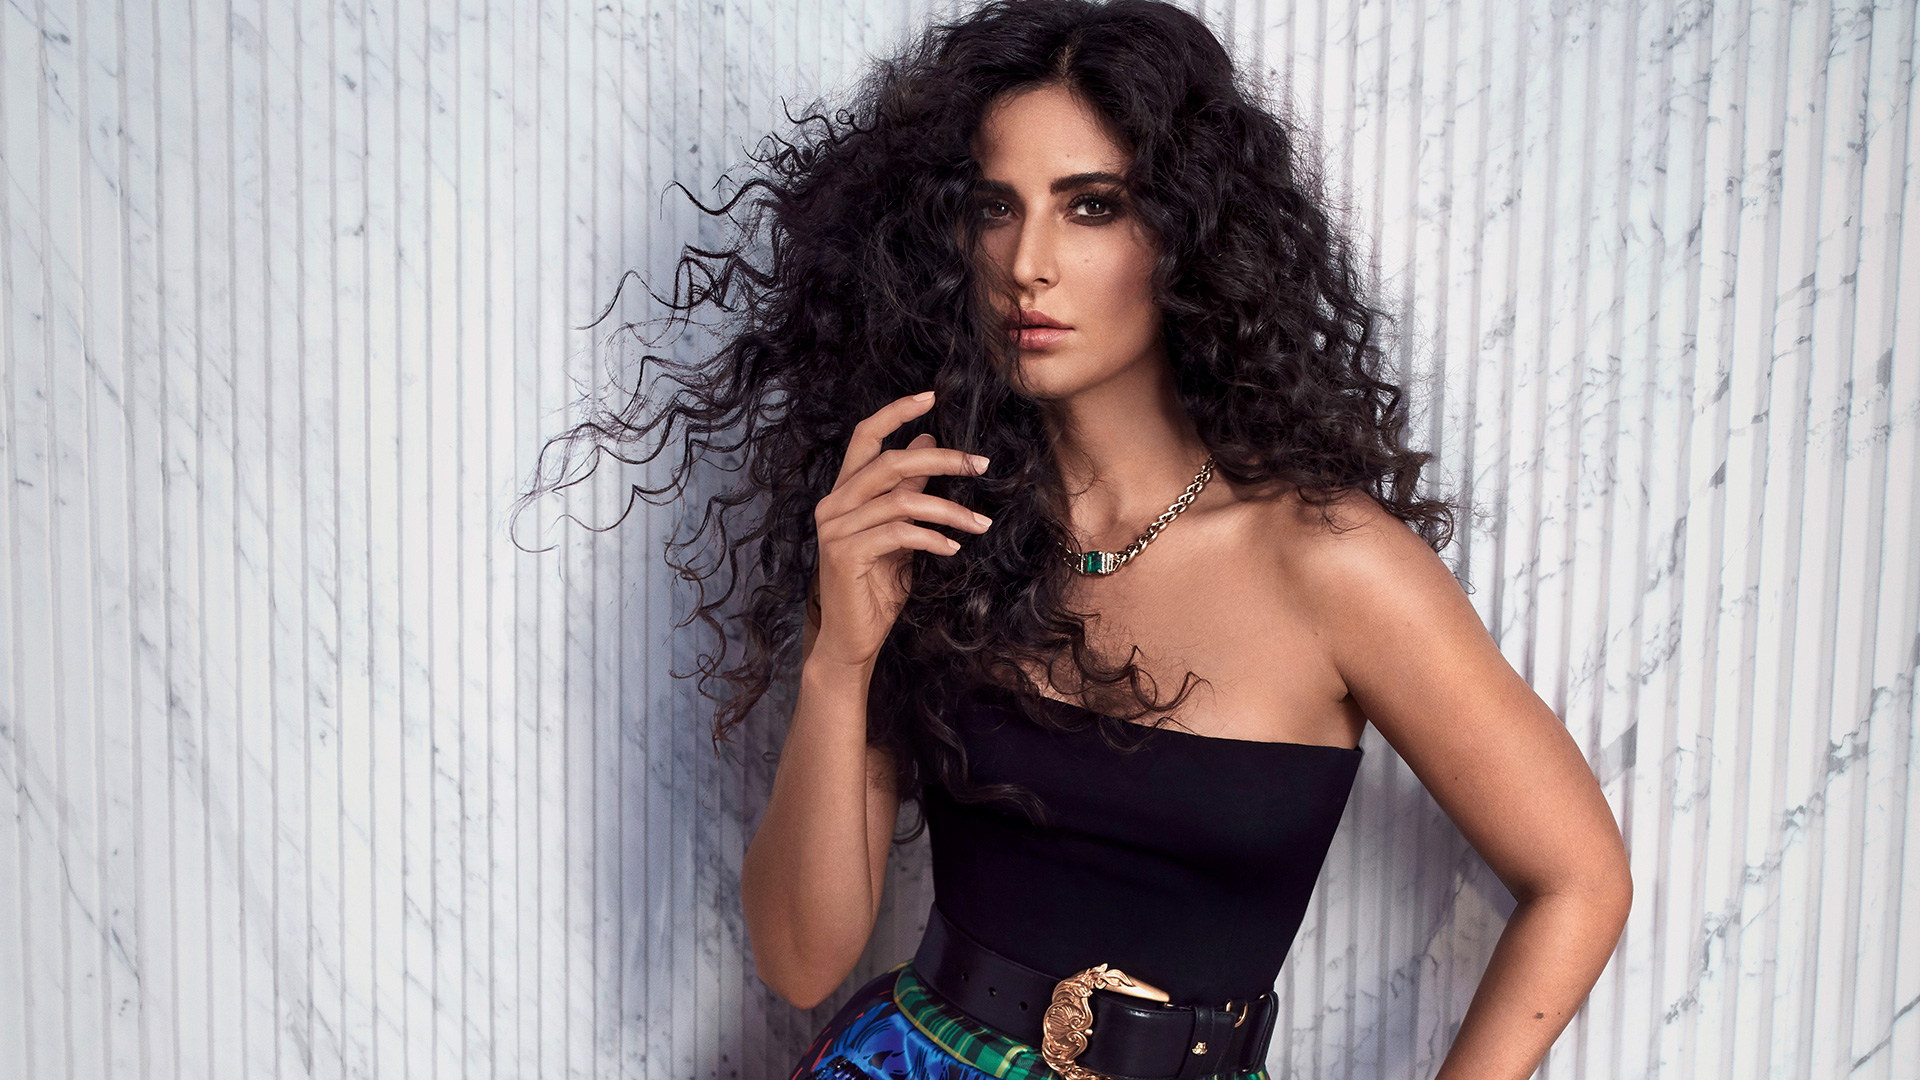 Katrina's breakup with Ranbir was a blessing to her. Read the full interview.